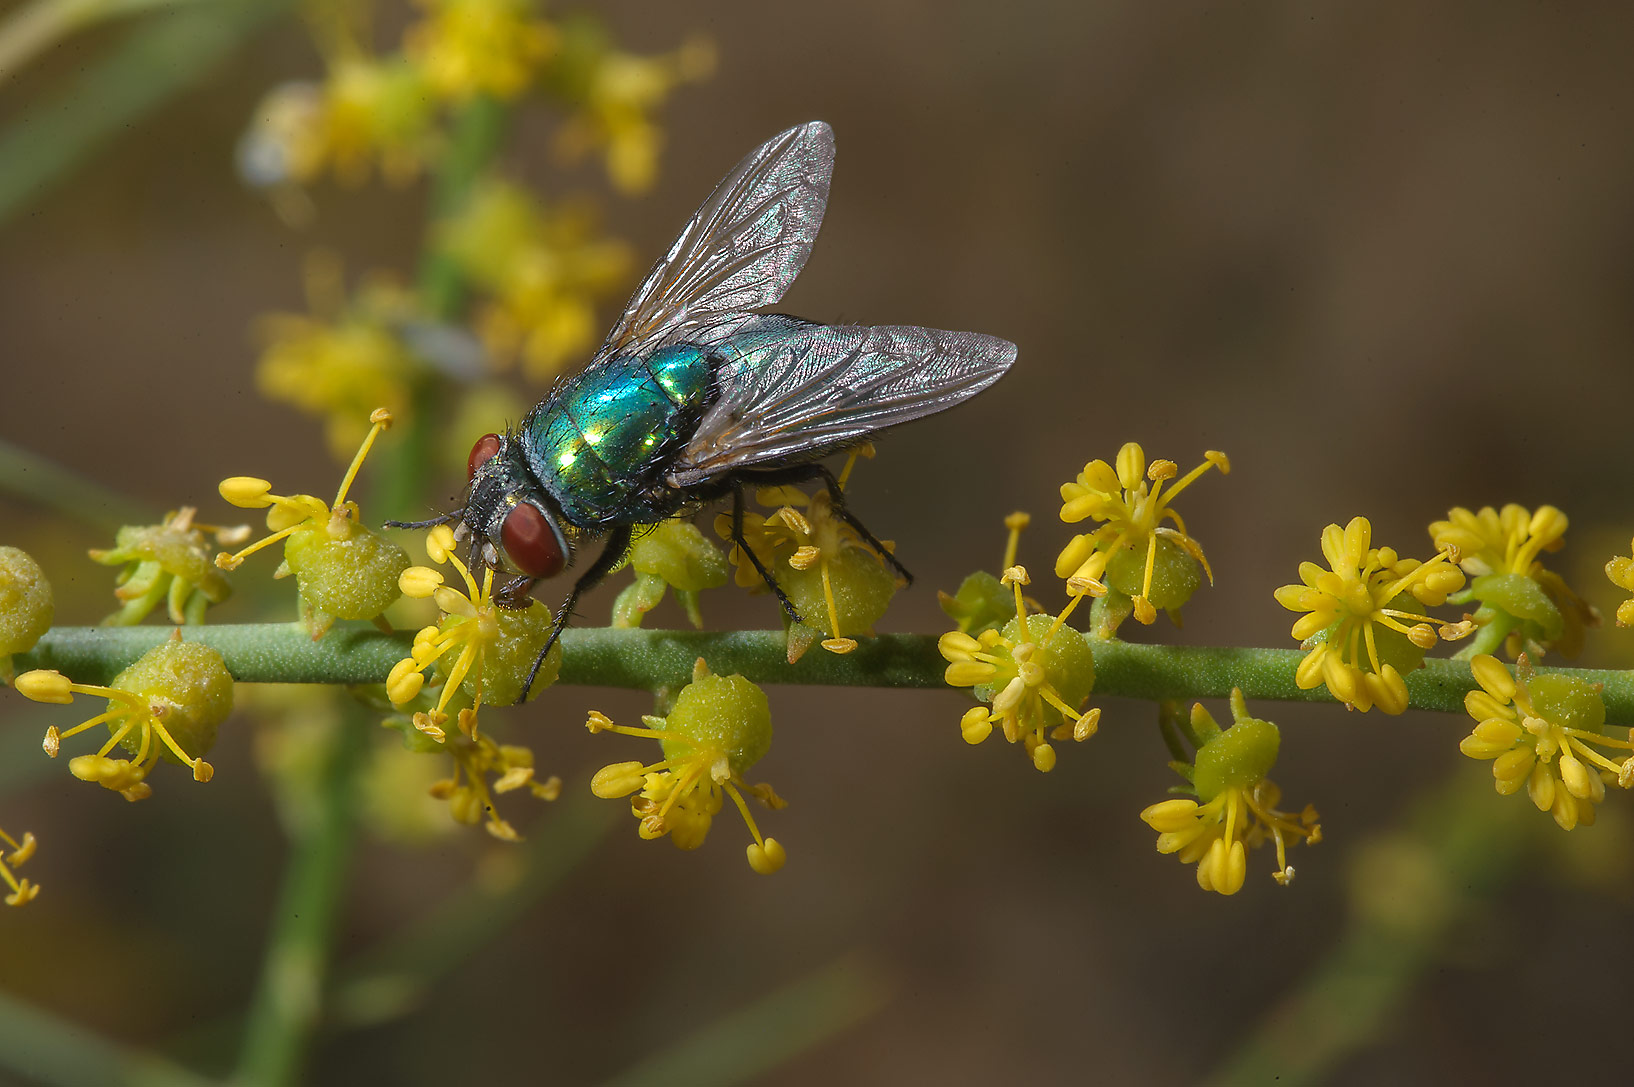 Green fly sitting on yellow flowers of Ochradenus...north from Dukhan in western Qatar